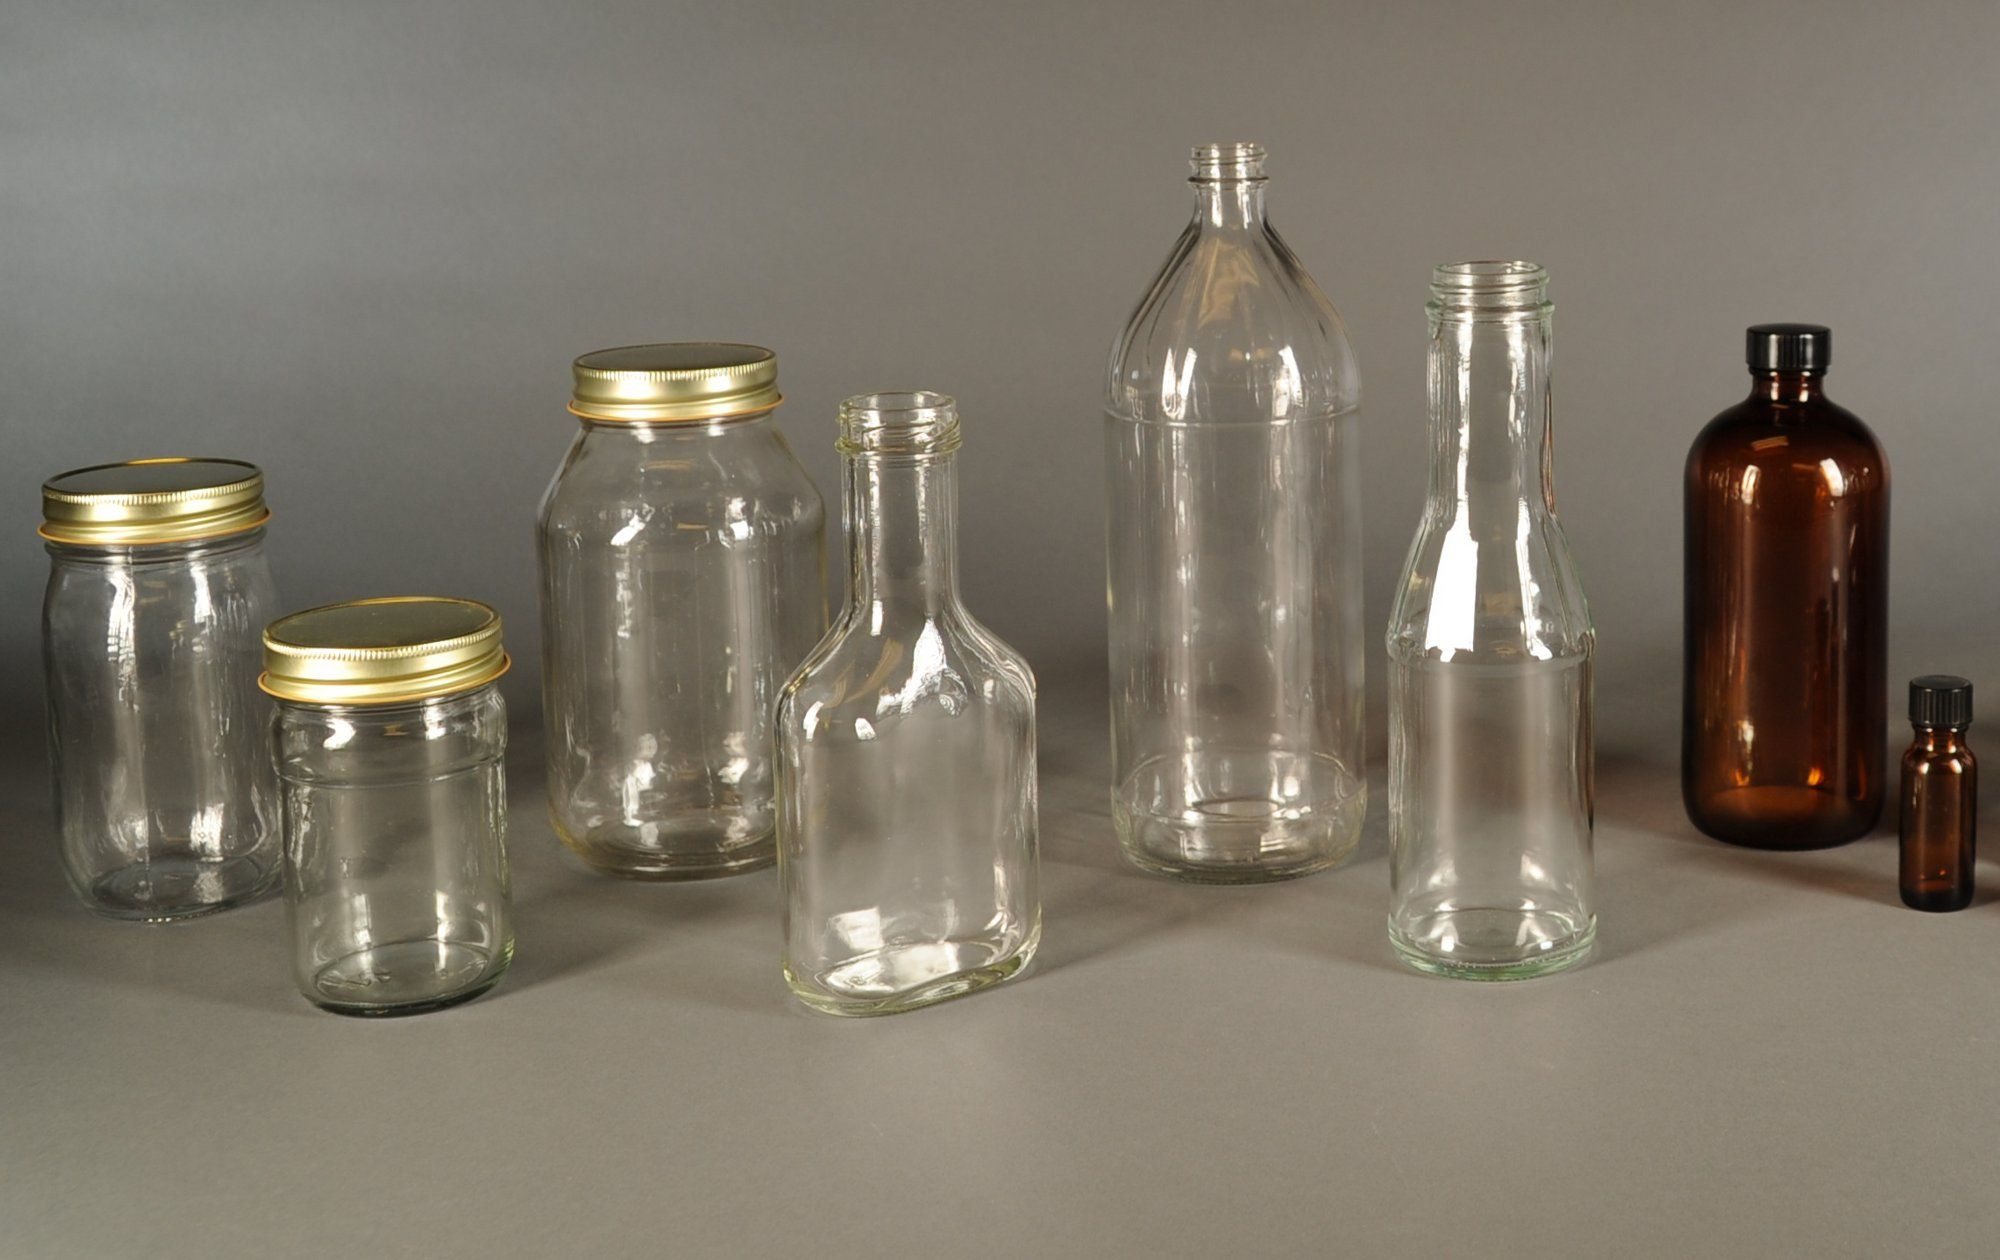 Canning Lids Jars Aaron Packaging Plastic Glass And Metal